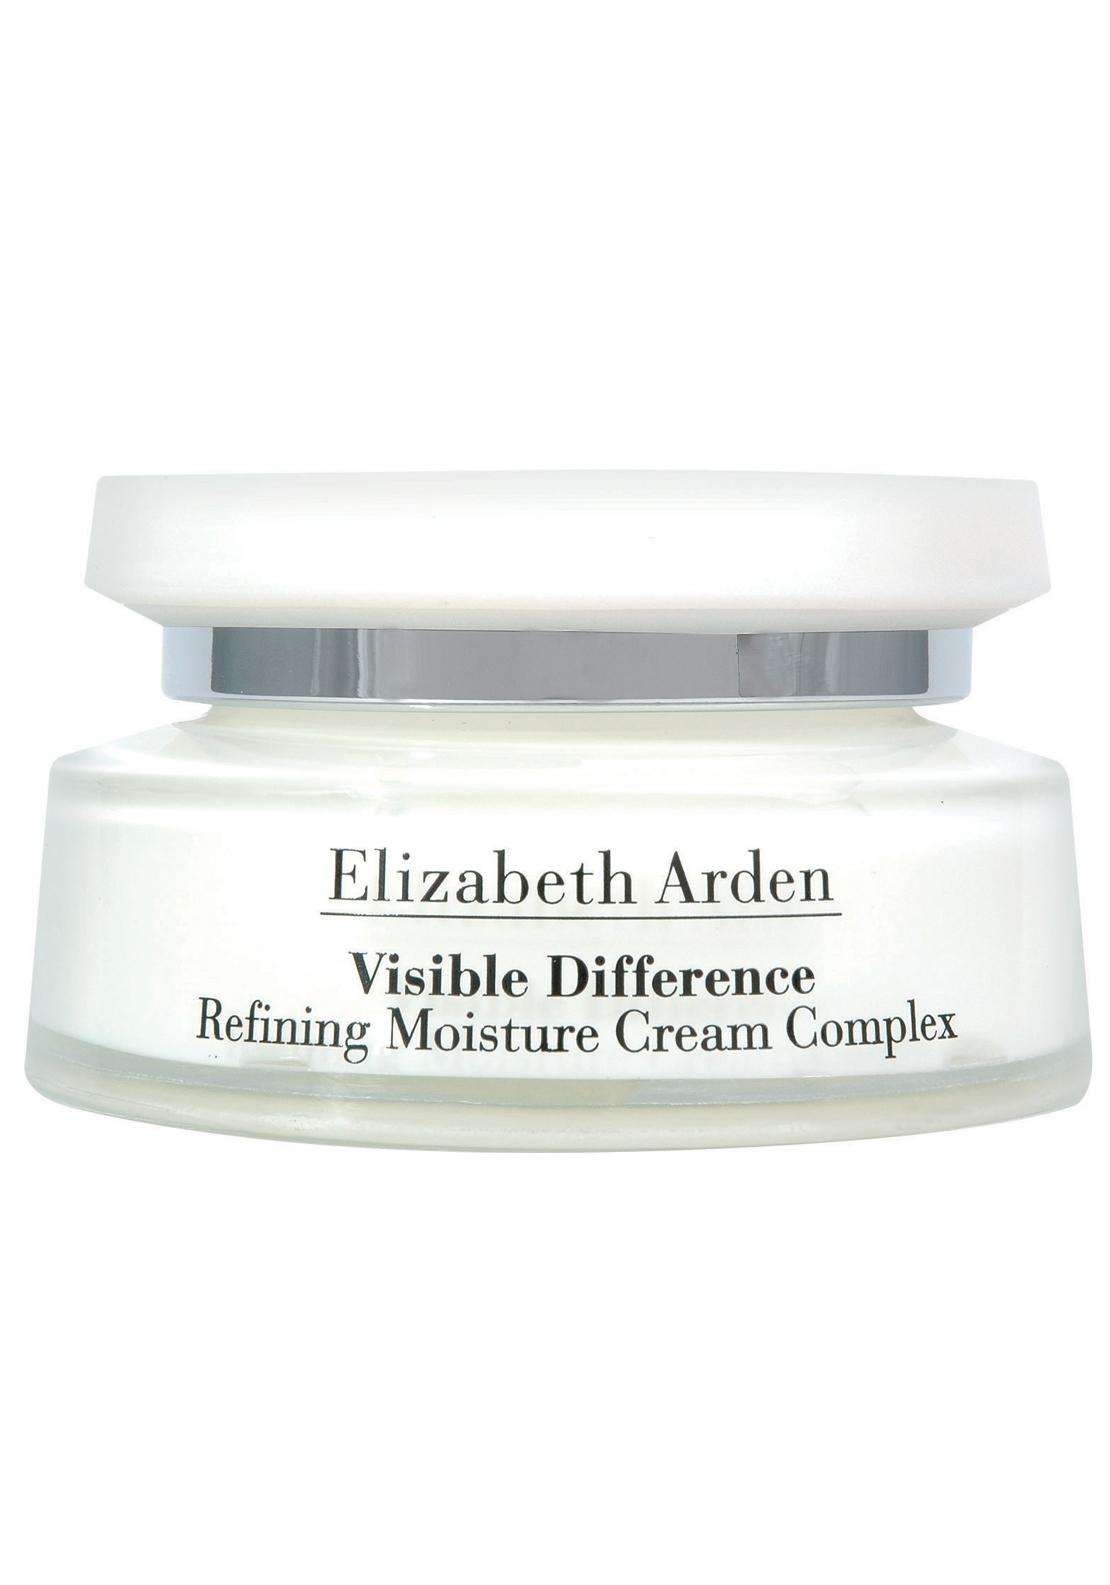 Elizabeth Arden Visible Difference Moisture Cream